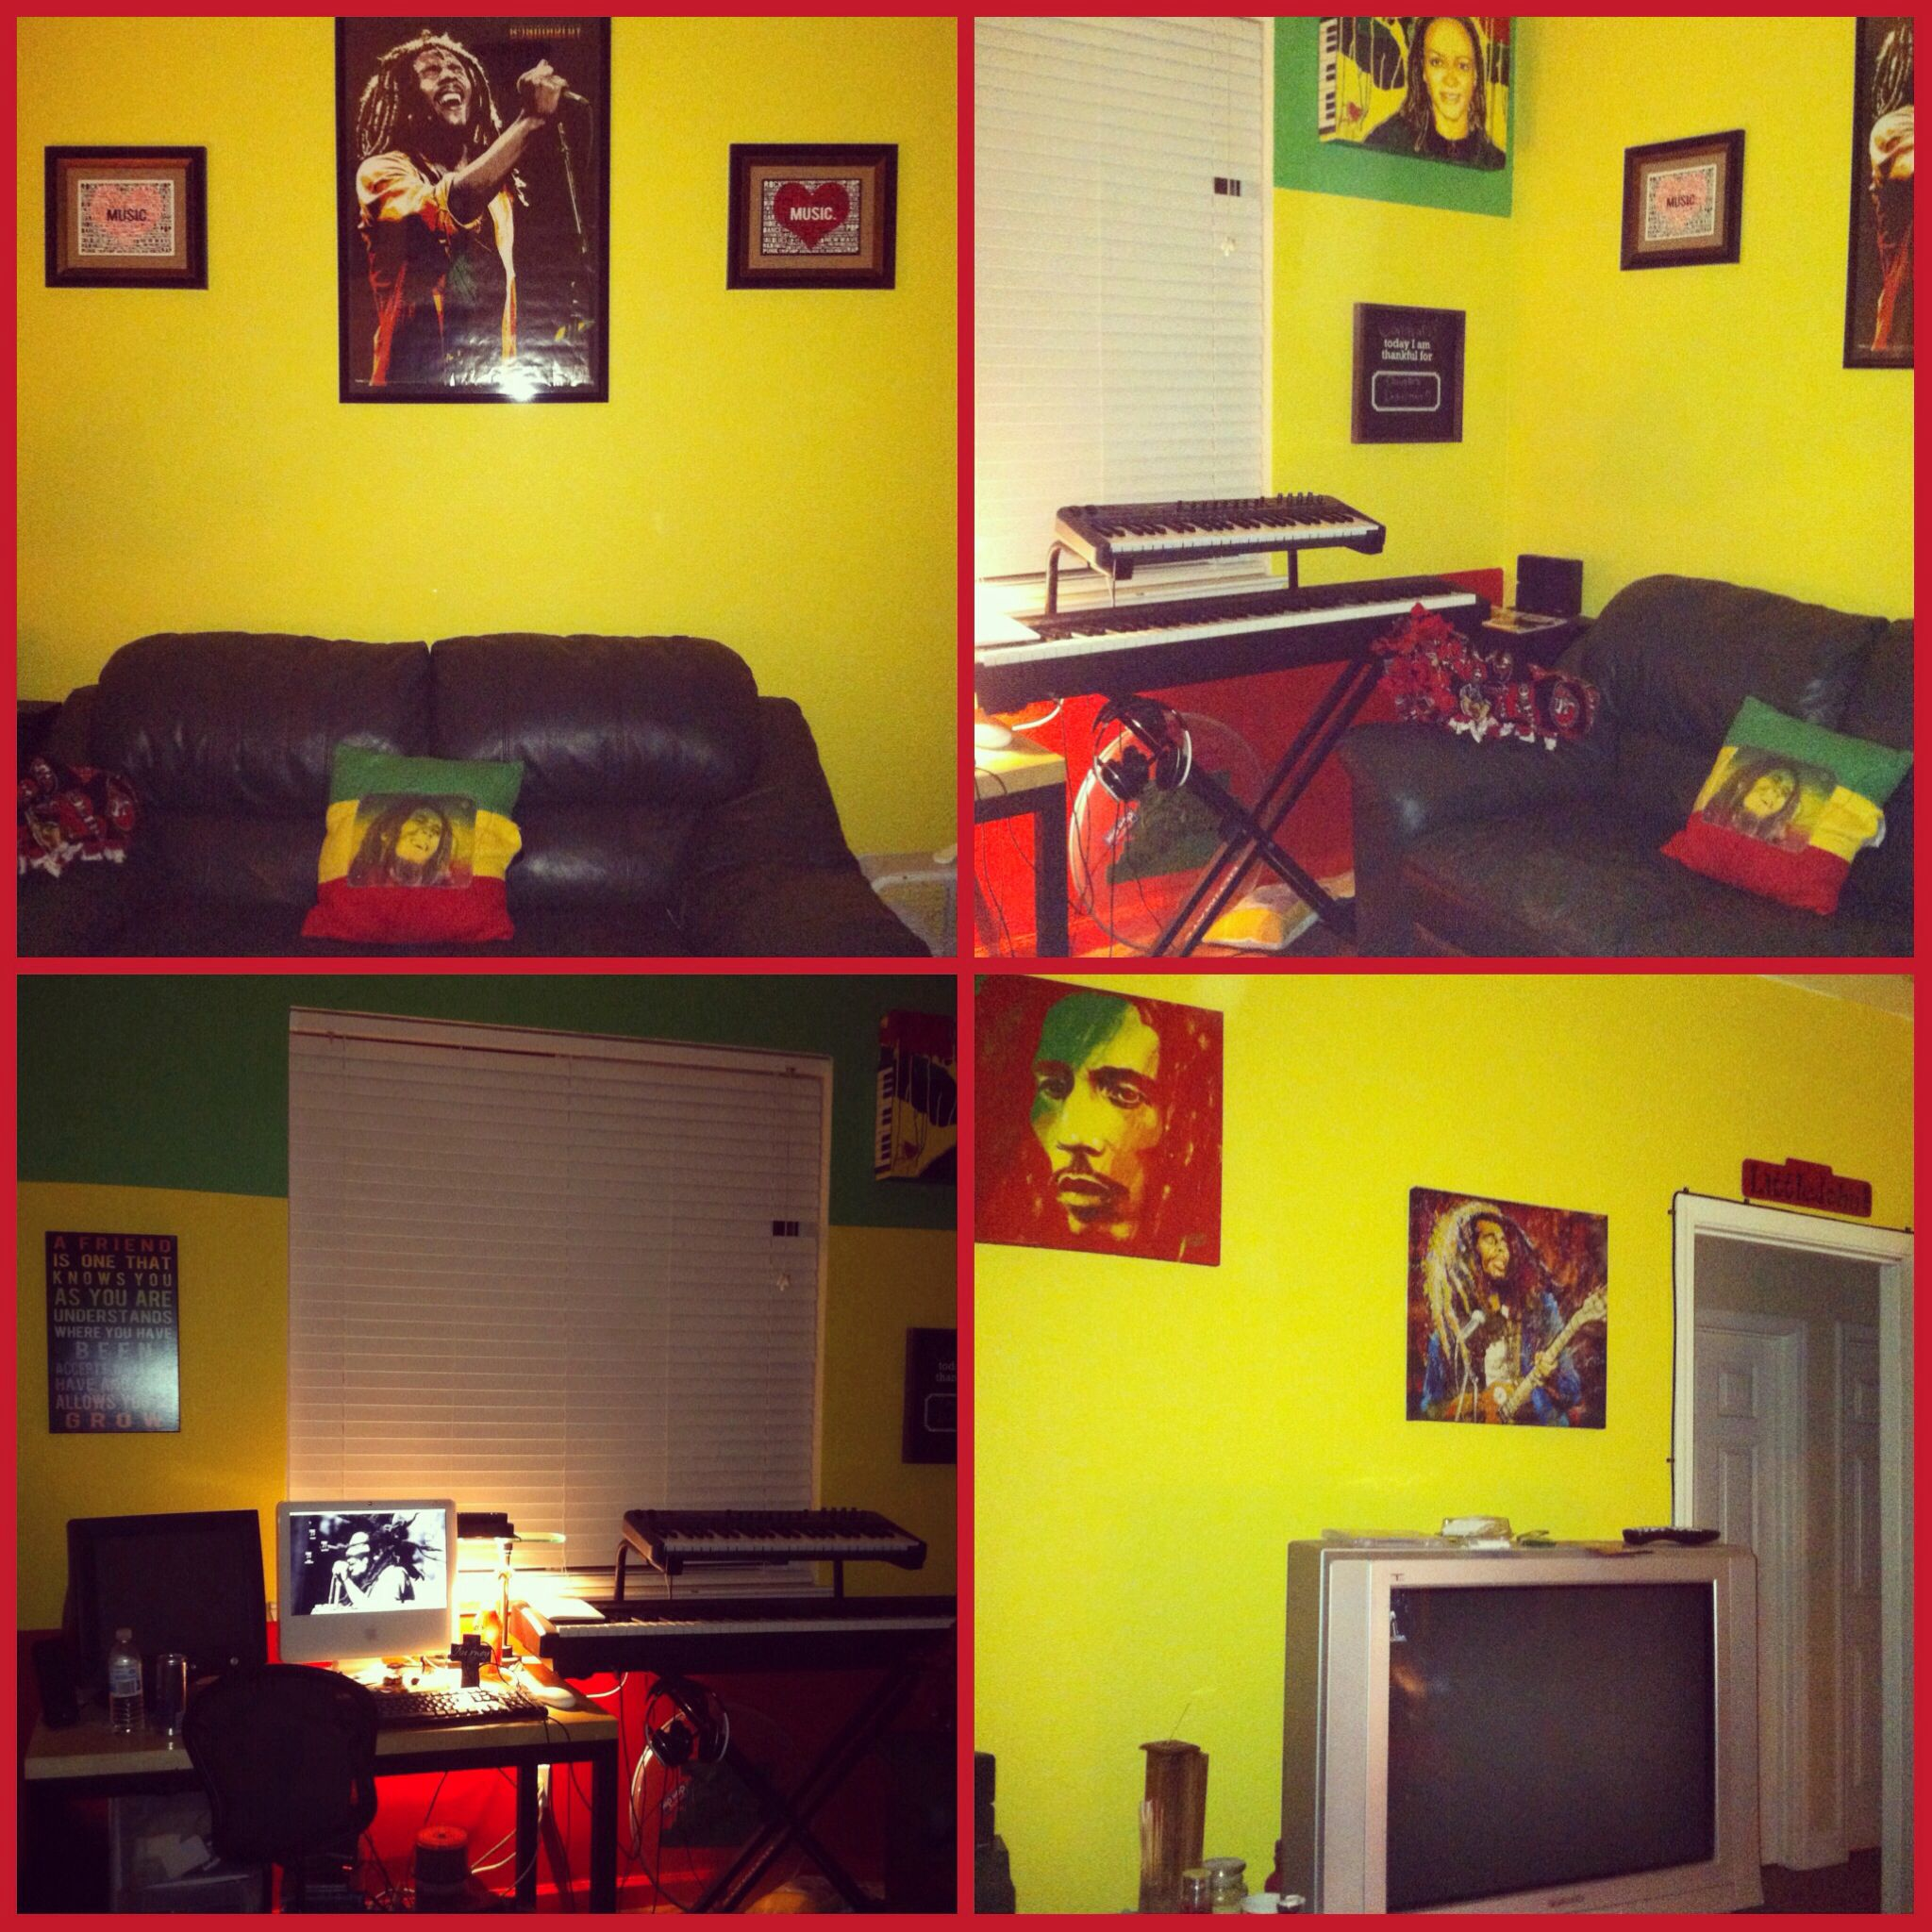 My Rasta/Bob Marley Themed Room.